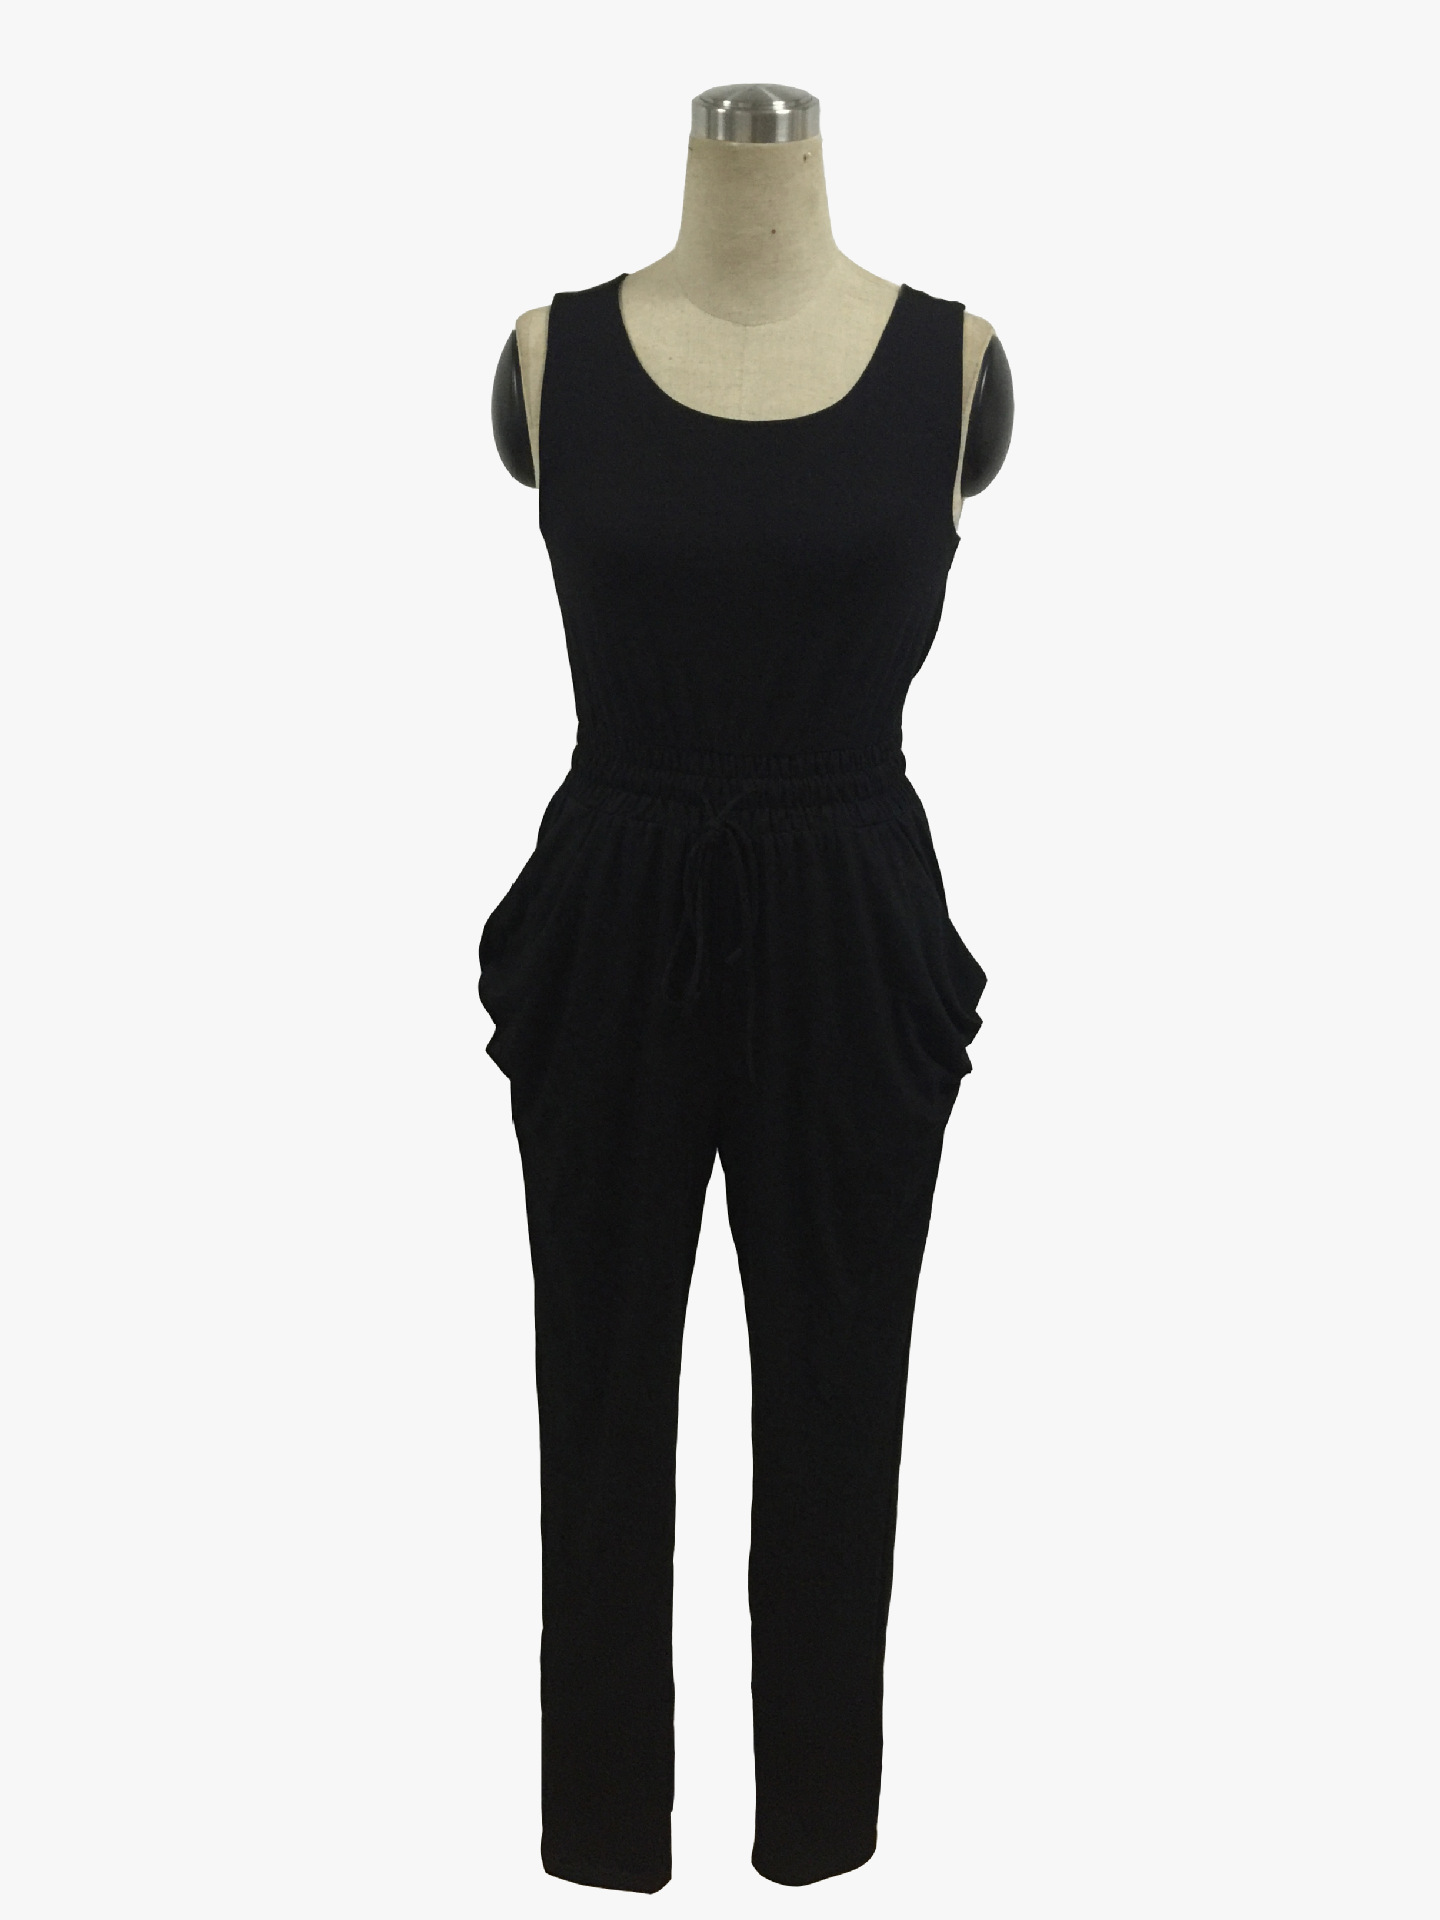 c28cbbec5ee7 2017 Summer Low Cut Rompers Womens Jumpsuit Multicolor Elastic Waist  Sleeveless Long Pants Playsuit PD-in Jumpsuits from Women s Clothing    Accessories on ...